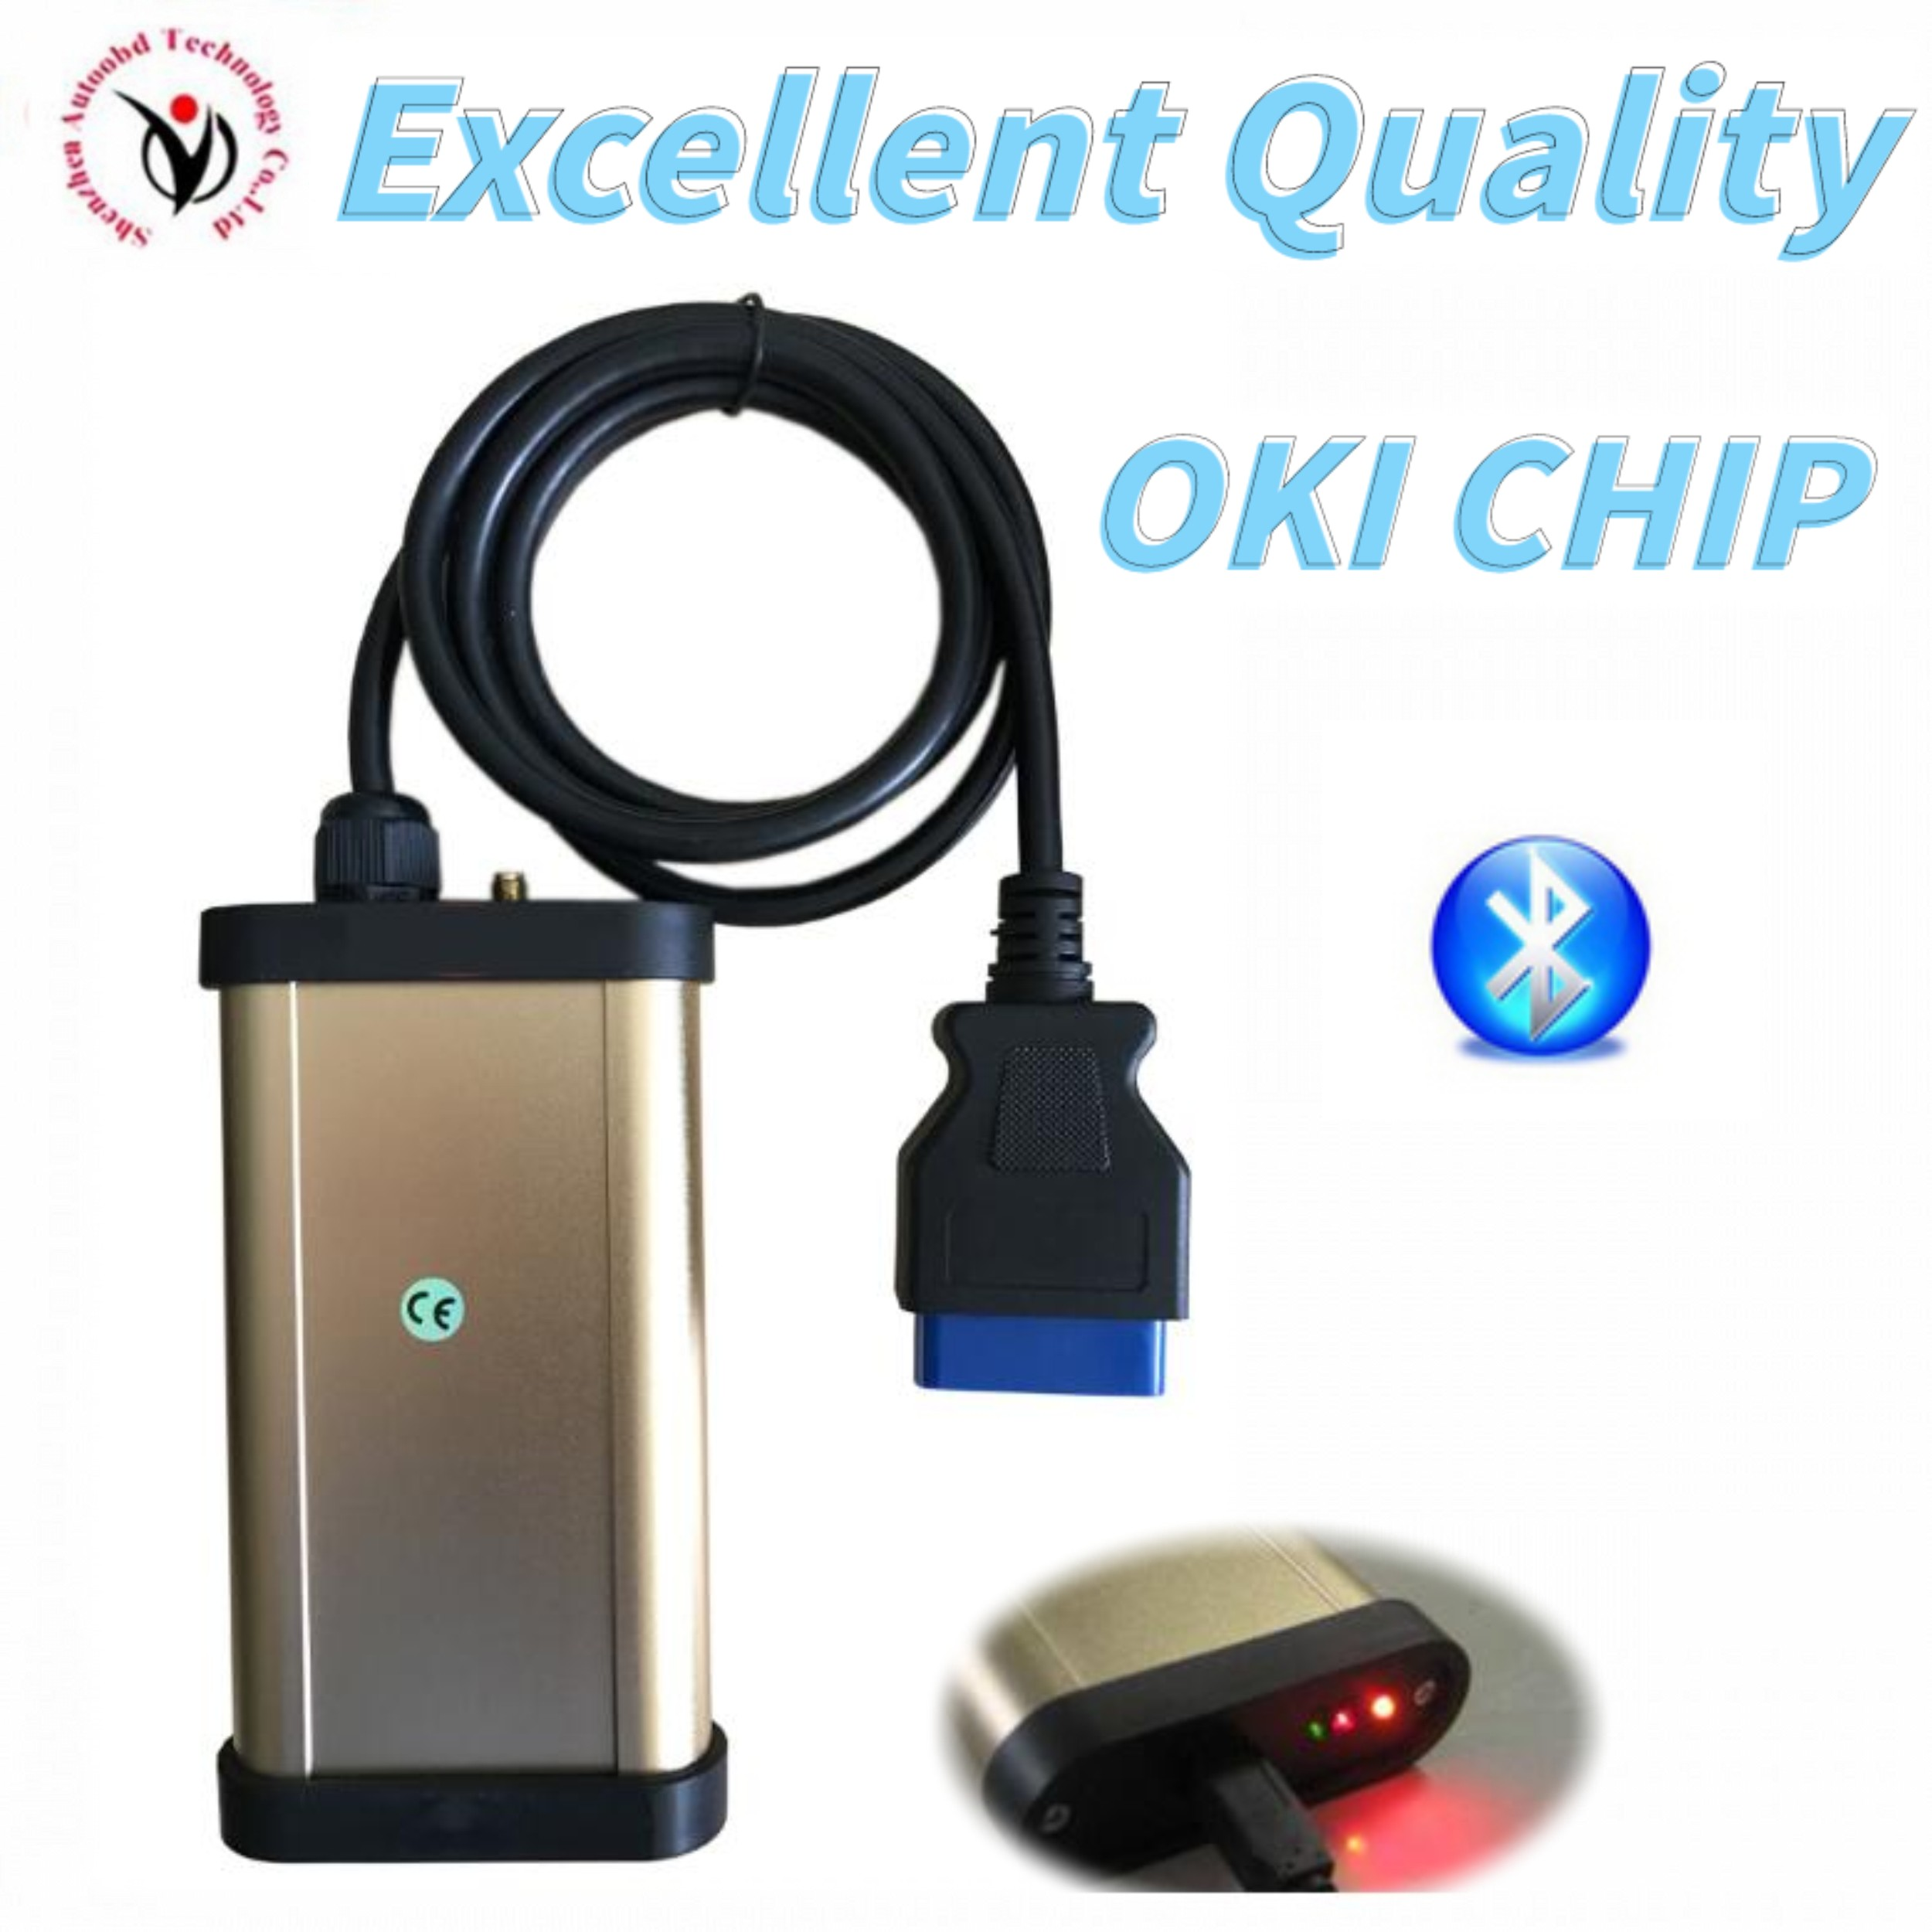 2020 Best VD TCS CDP PRO Plus 2016.R0 Free Keygen Oki Chip Bluetooth Vd Ds150e Cdp For Delphis Car Truck OBD2 Diagnostic Tool